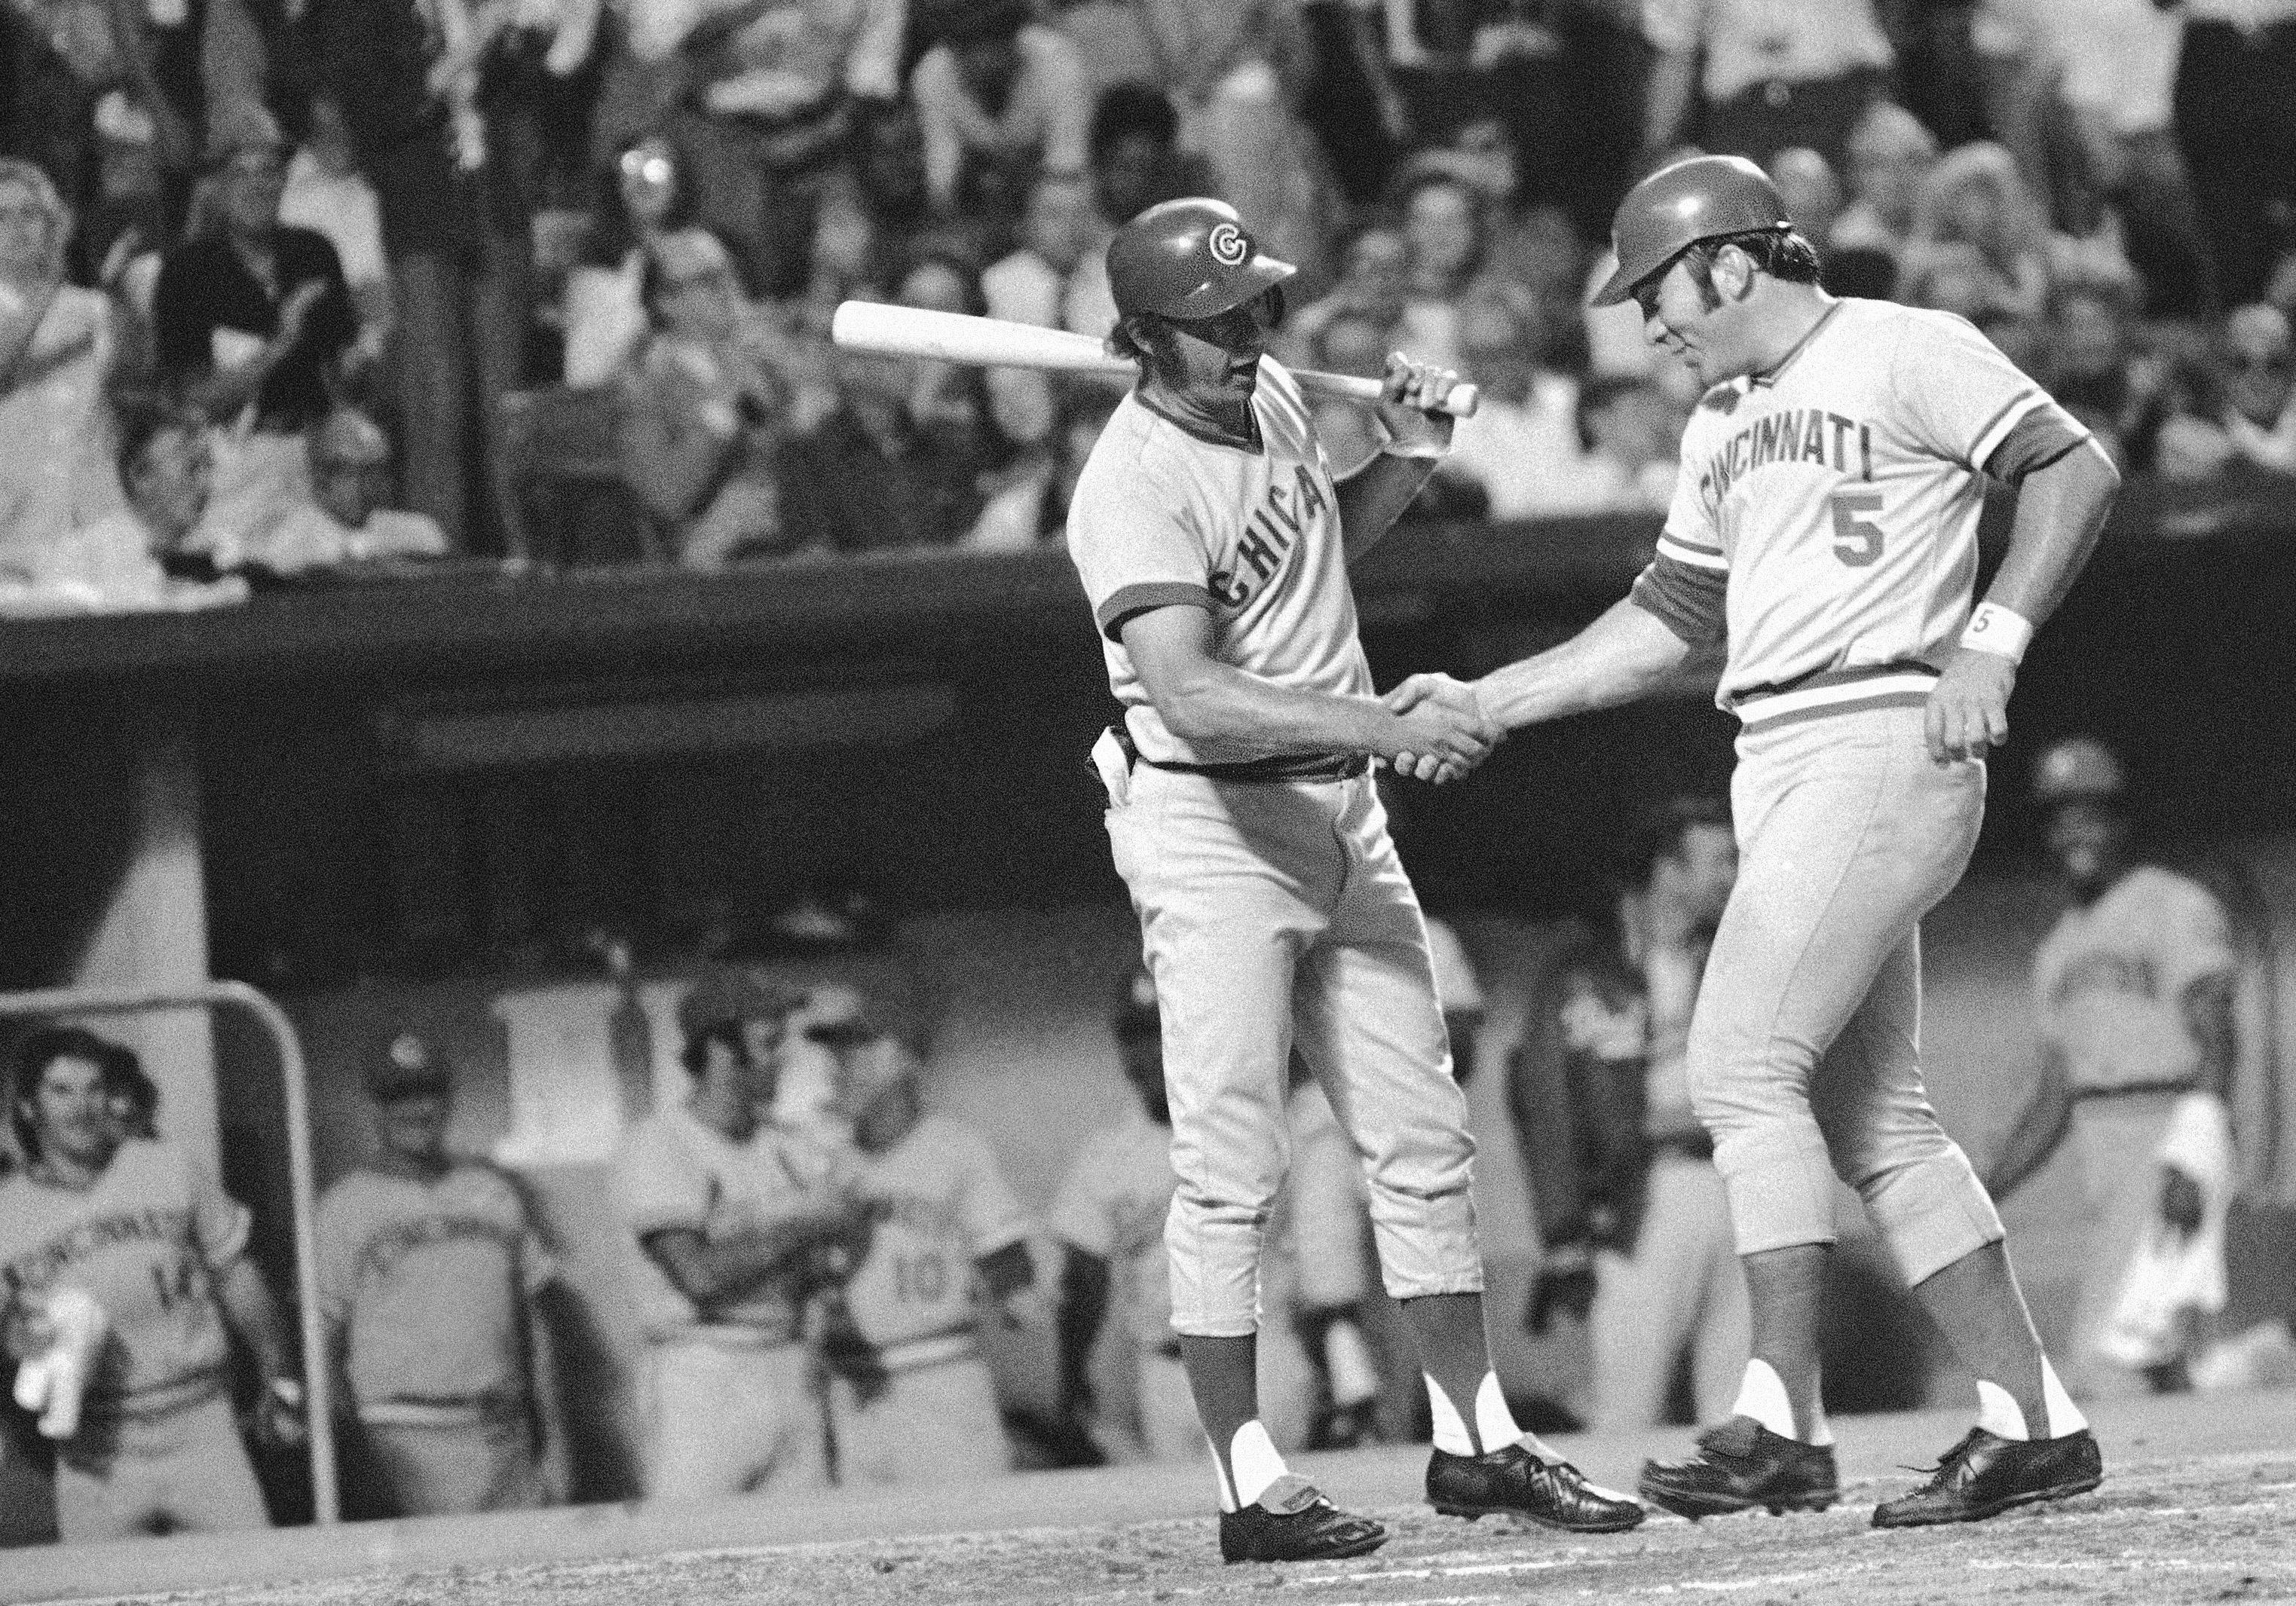 Johnny Bench (5) of Cincinnati Reds is greeted at plate by Ron Santo of Chicago Cubs after Bench scored a home run for the National League in the fourth inning of the 44th All-Star game at Royals Stadium, Tuesday, July 25, 1973, Kansas City, Mo. The National League won, 7-1, to capture its 10th victory in last 11 All-Star Games.